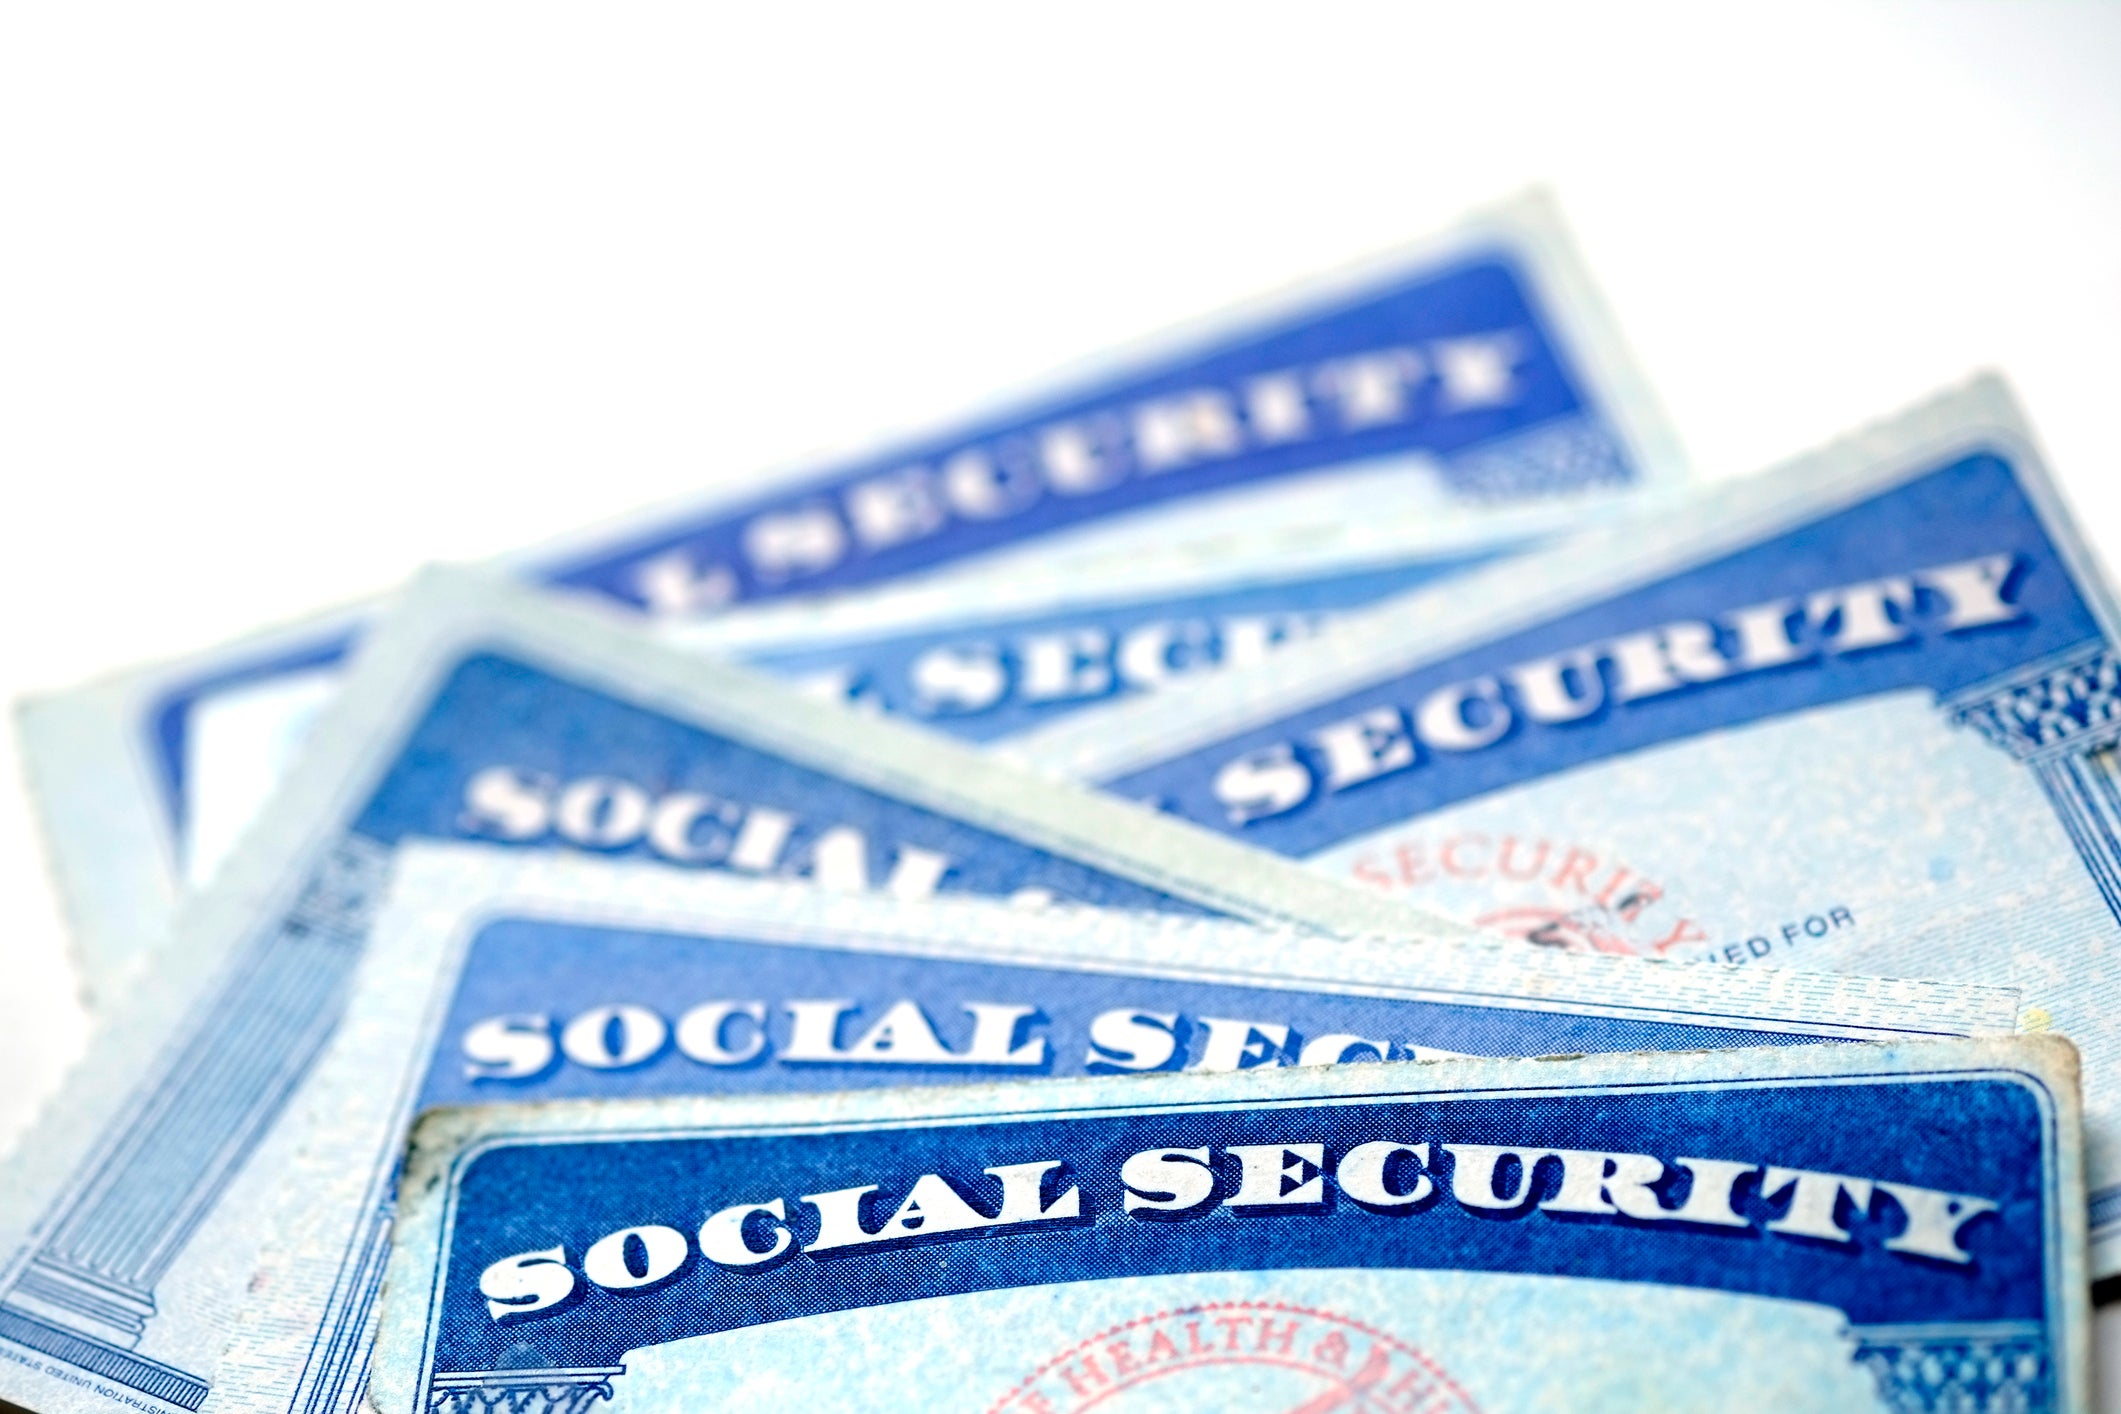 3 Social Security Rules That Are Downright Unfair